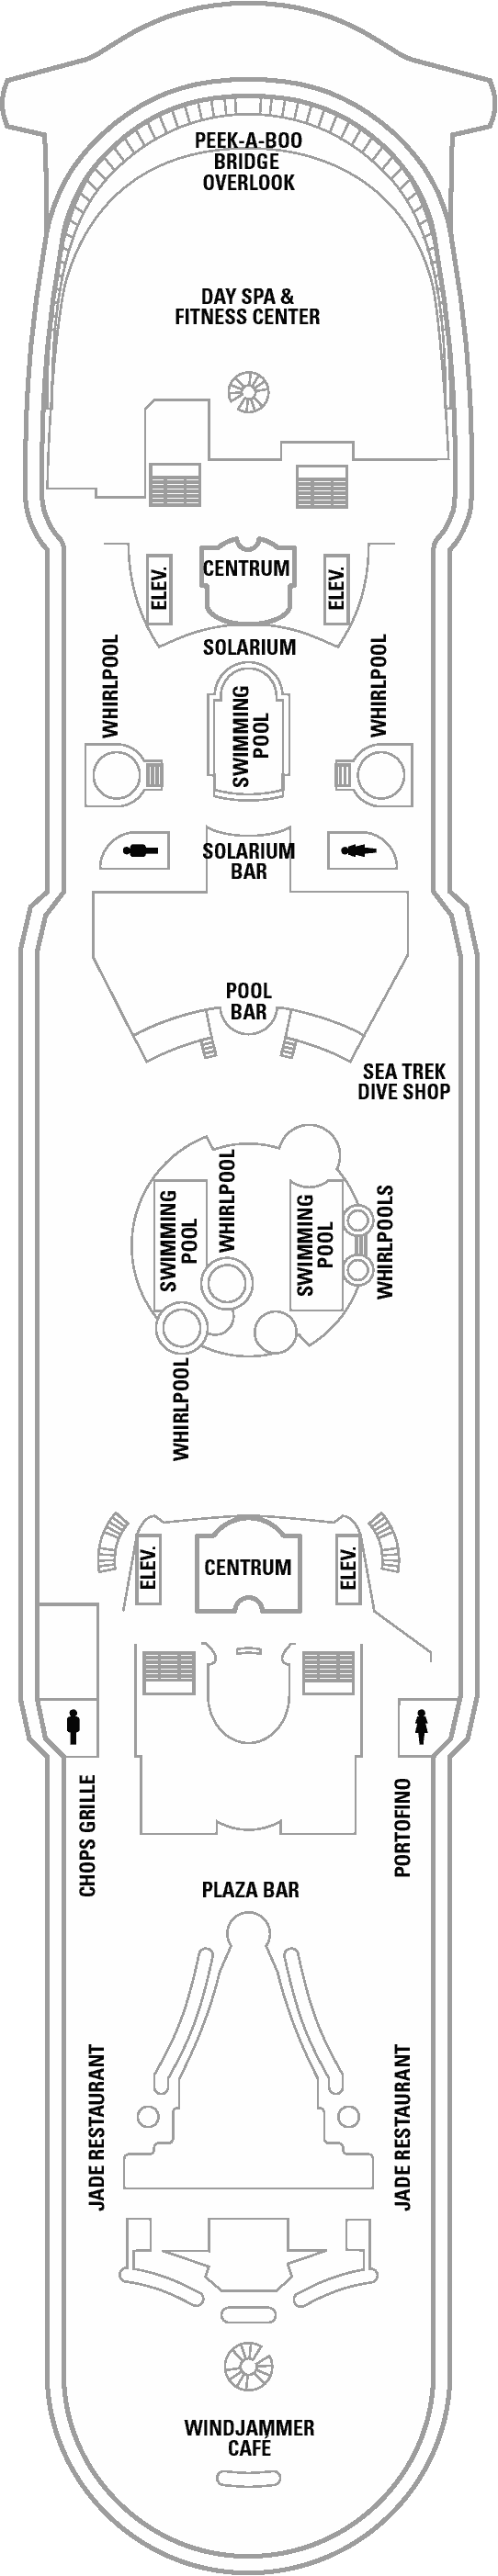 mariner of the seas deck plans